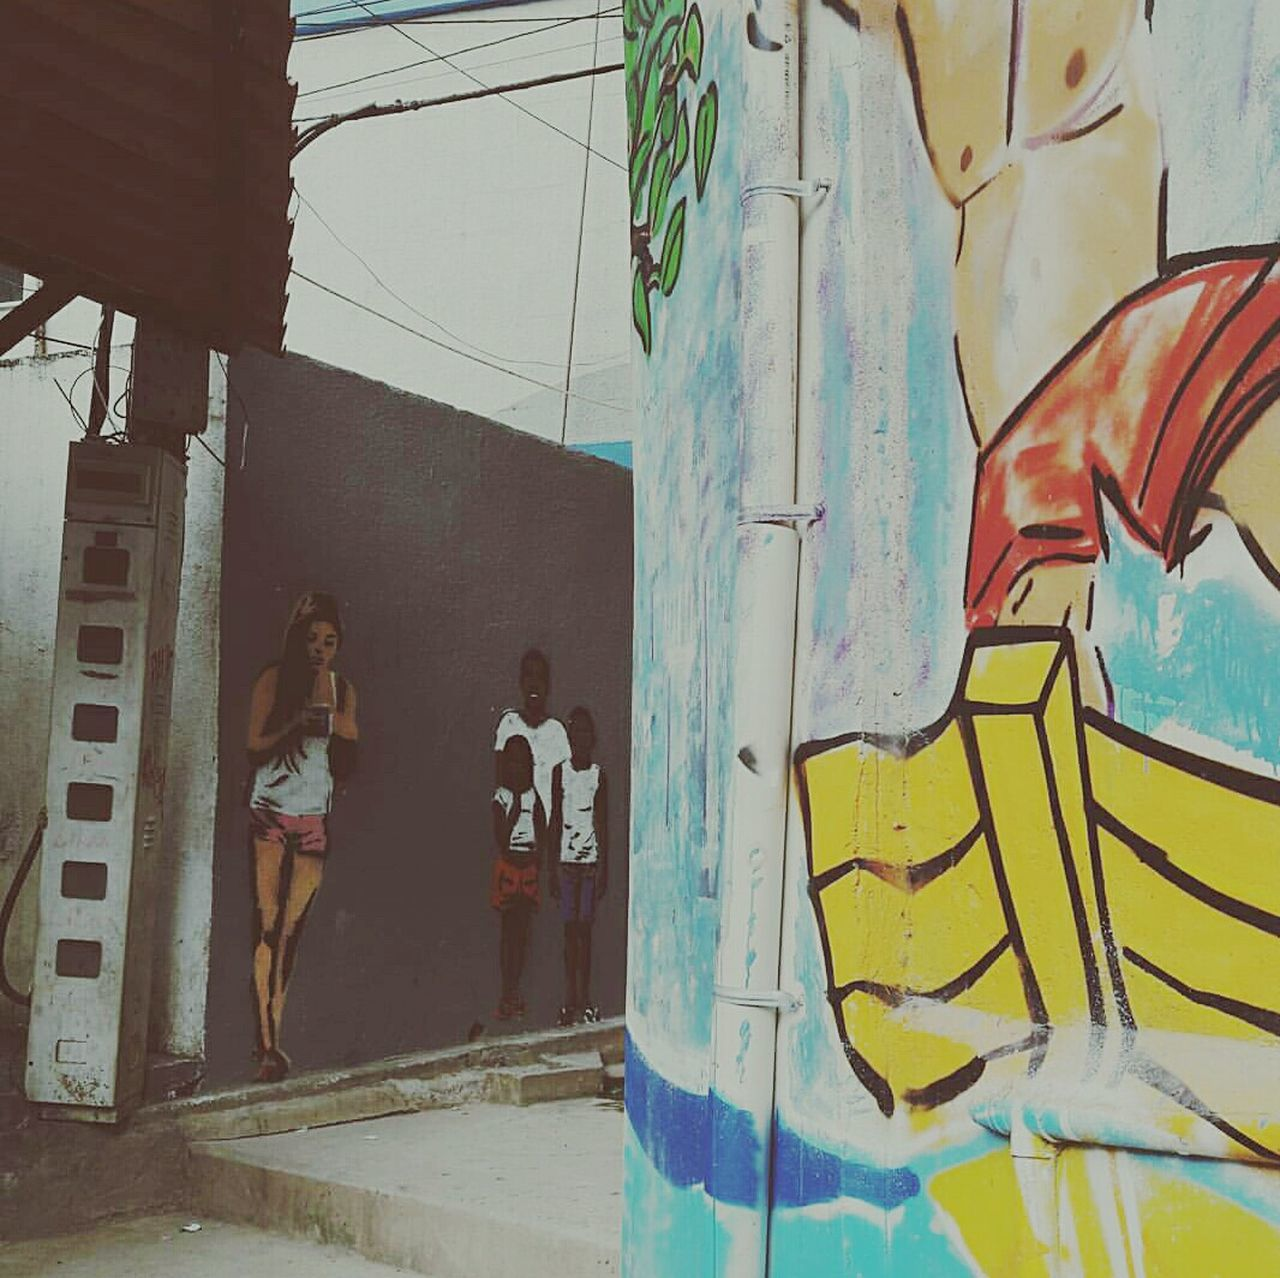 Rio De Janeiro Graffiti Art Creativity Art Favela Love Arte Urbanismo Urbanism The City Light EyeEmNewHere